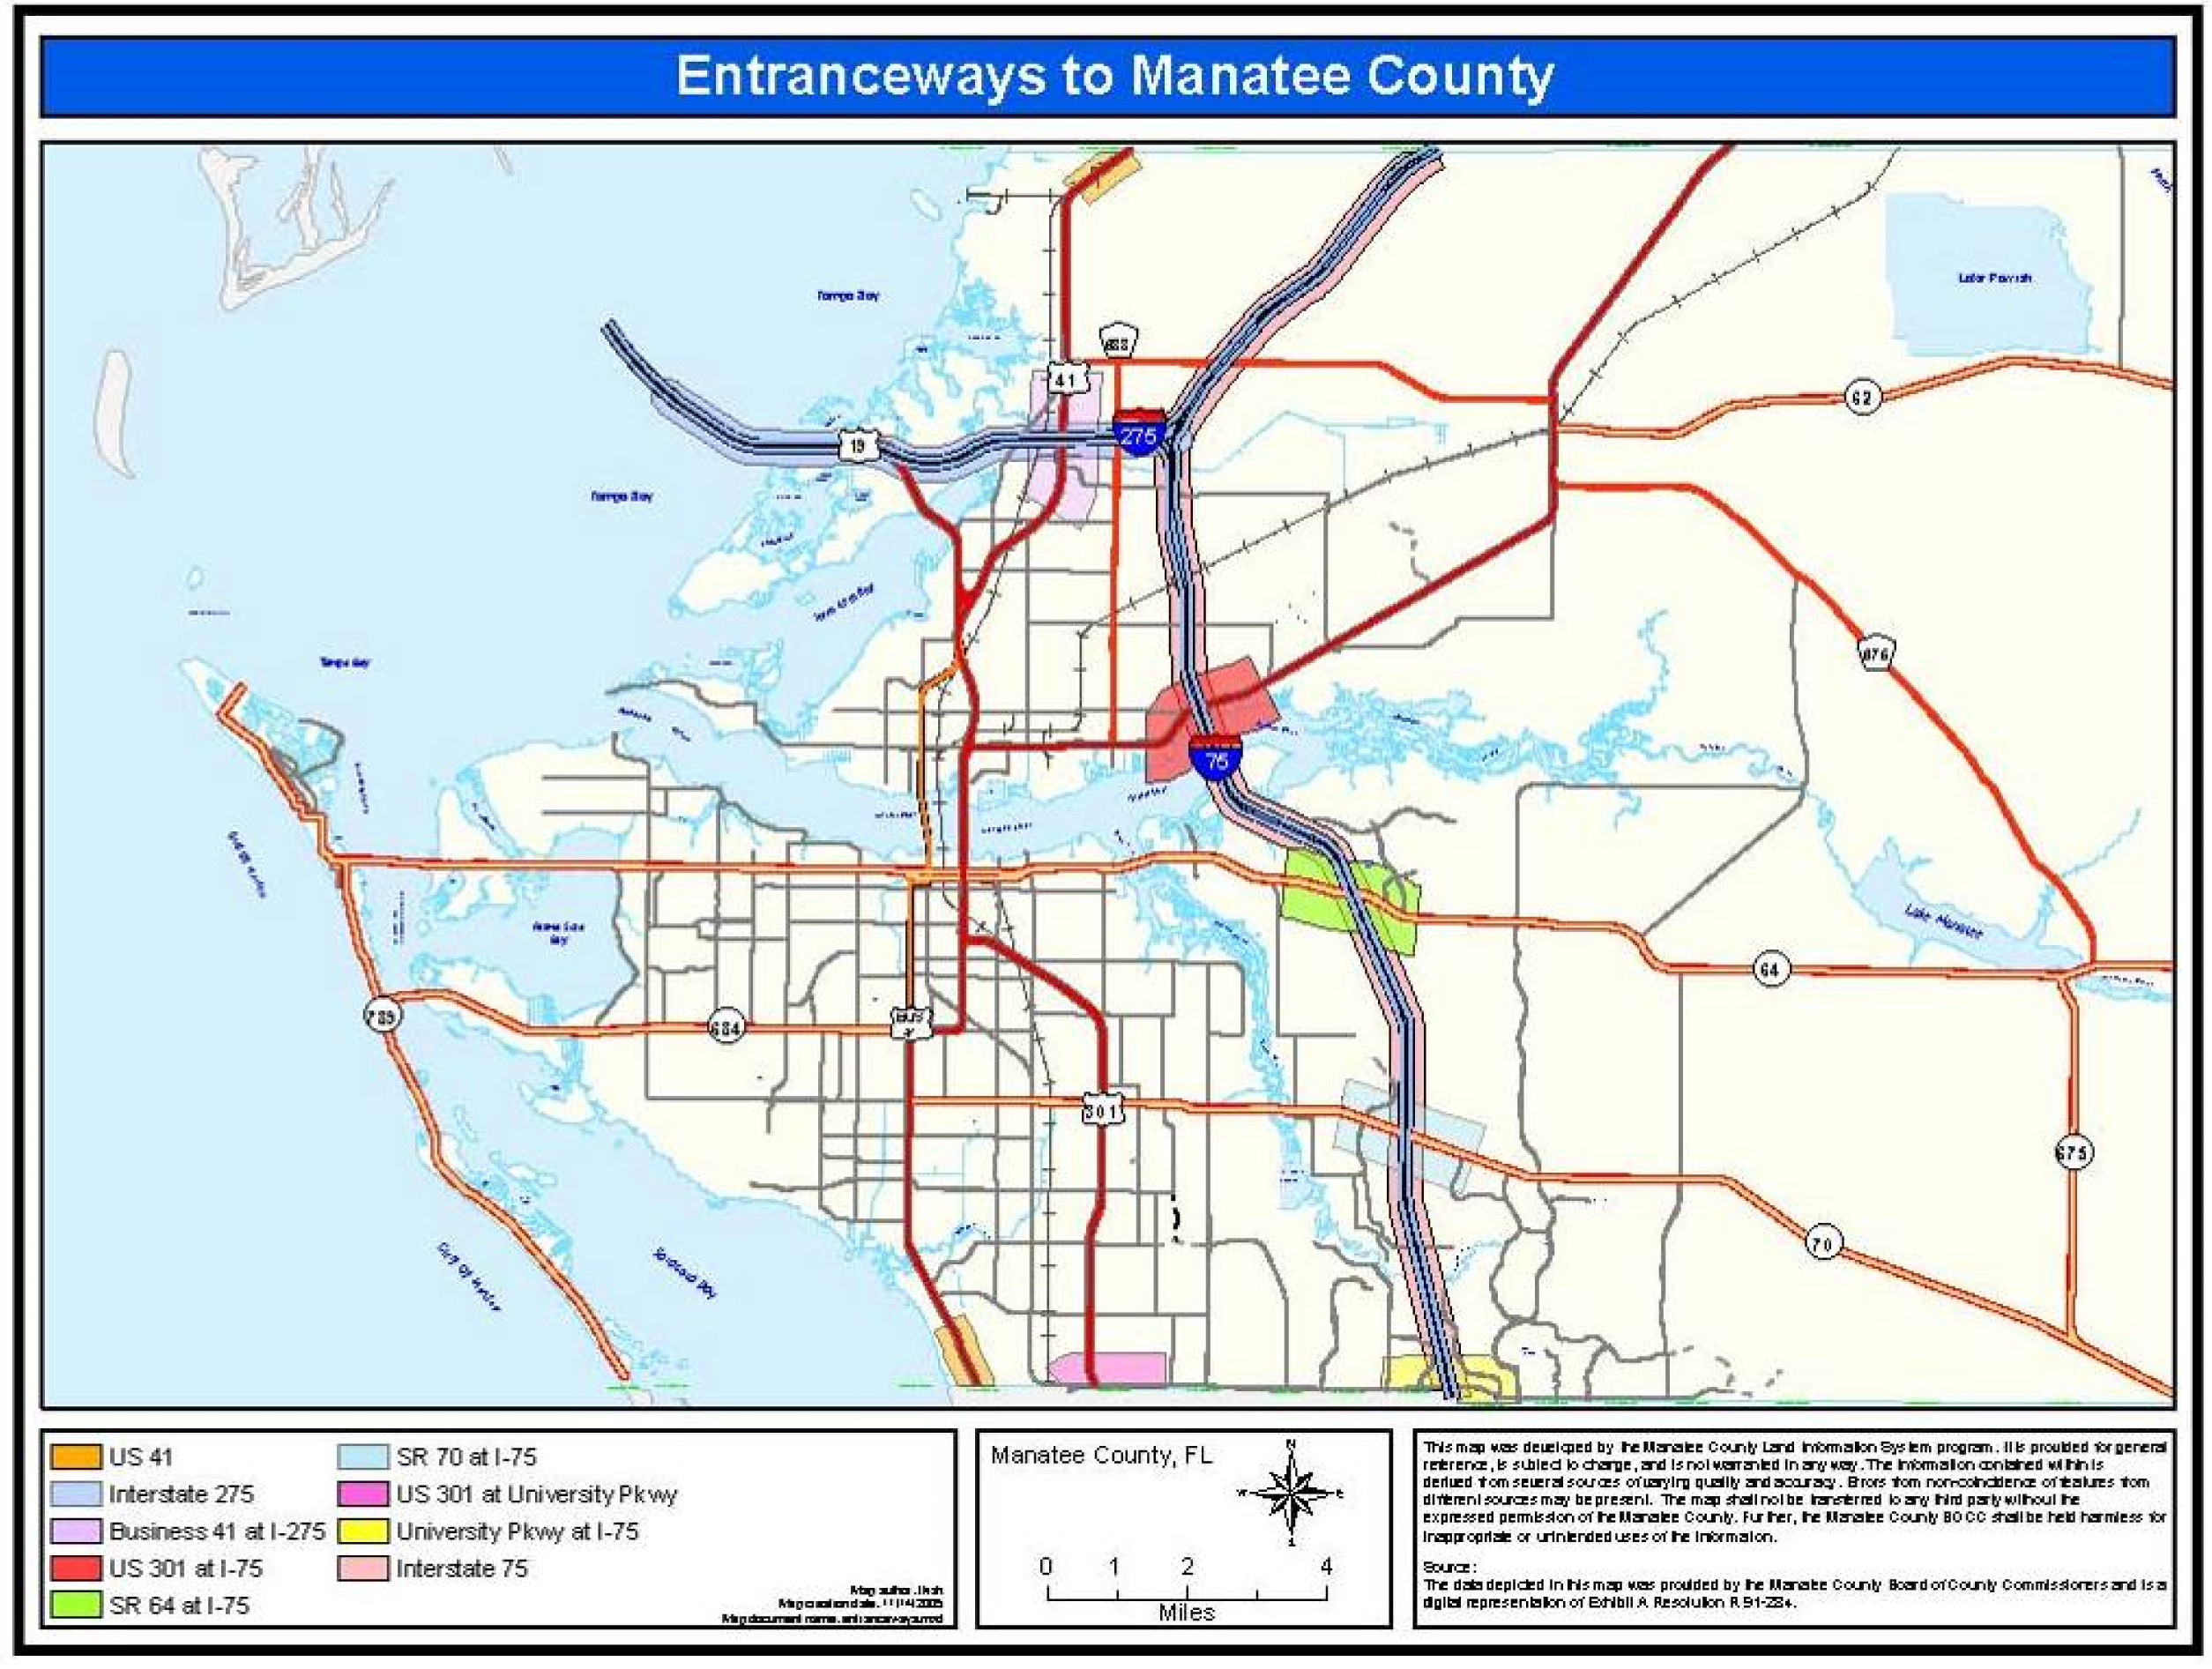 Chapter 9 - DESIGN GUIDELINES AND STANDARDS | Land ... on lake manatee map, port manatee map, hillsborough county map, longboat key county map, otter county map, florida map, naples map, west volusia county map, manatee river map, seminole county map, charlotte county map, manatee zoning map, polk county map, st. augustine map, sarasota map, tampa county map, manatee springs state park map, broward county map, st. johns county map, pinellas county map,